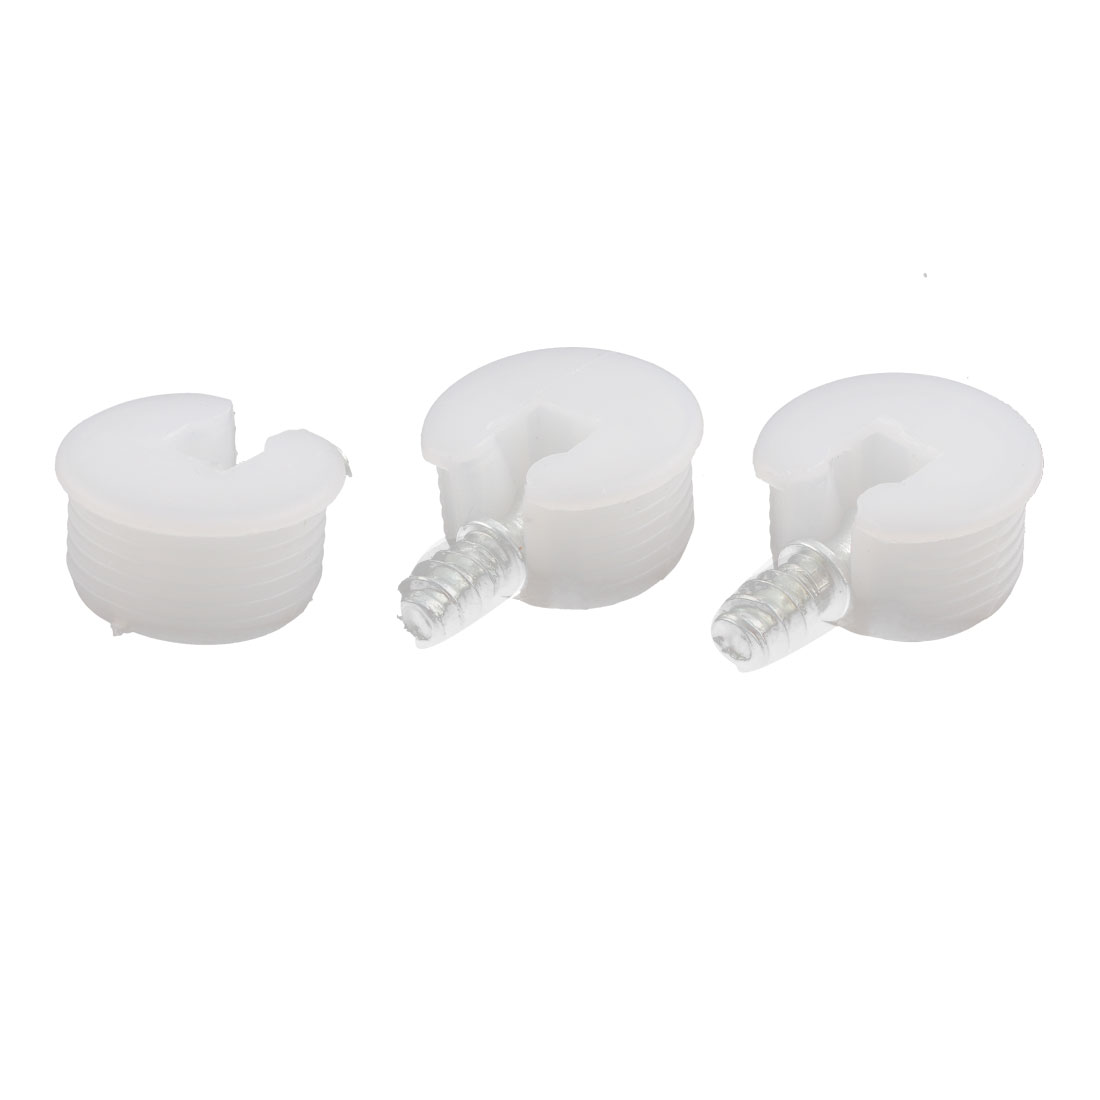 Round Shape White Plastic Screw in Shelf Support Pin Supporter 3Pcs